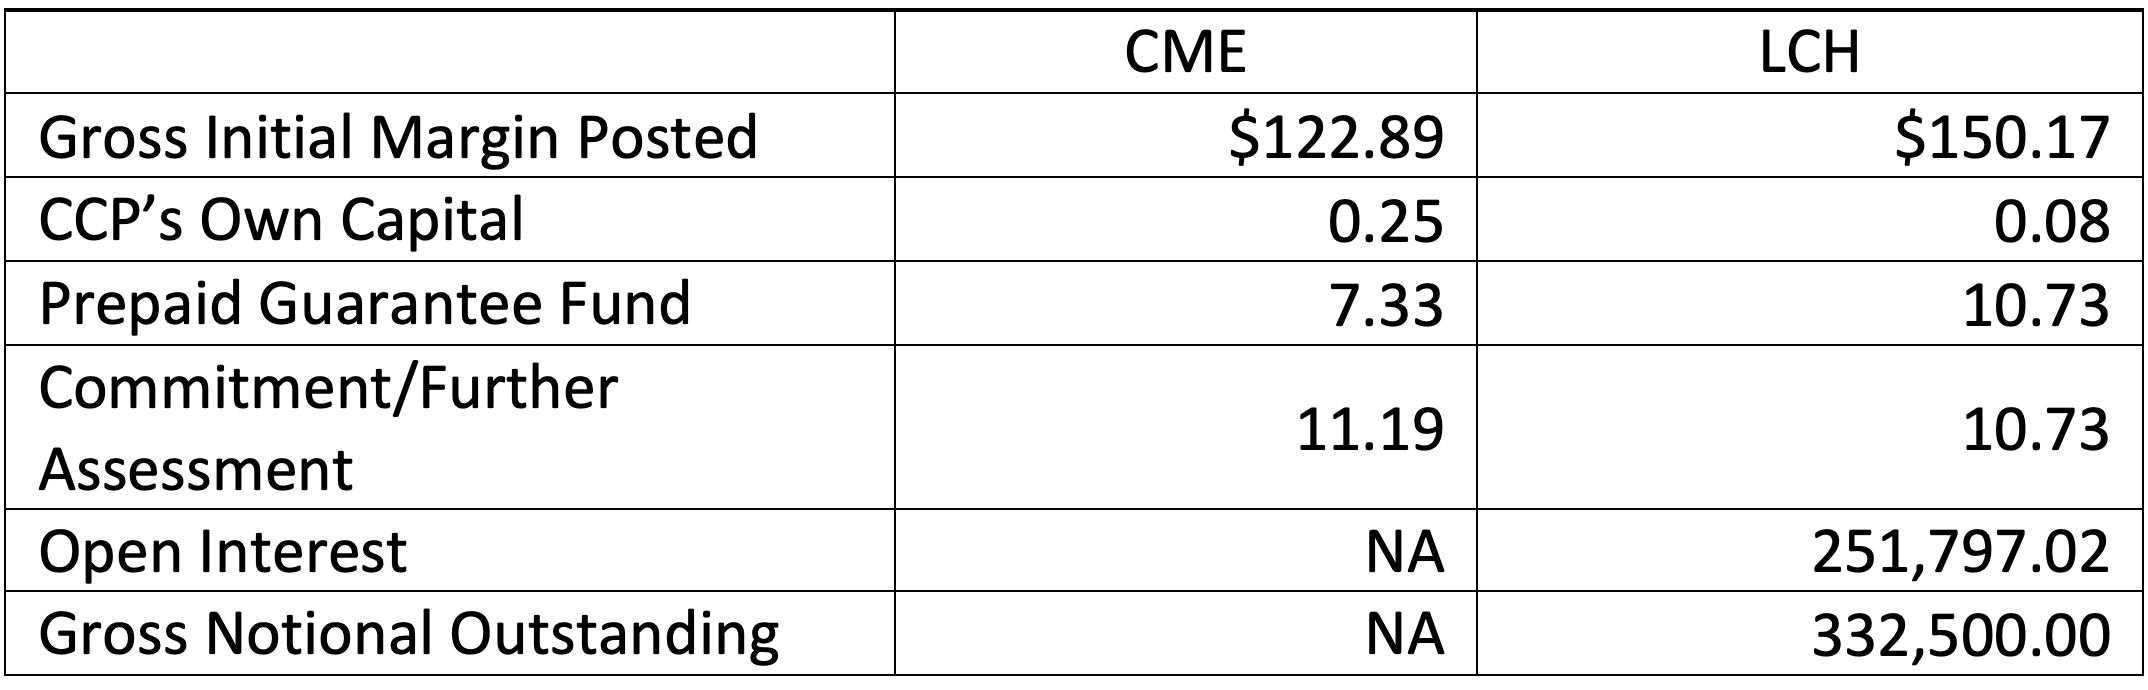 Source: Authors' calculations based on CPMI-IOSCO quarterly disclosures ( CME ,  LCH1  and  LCH2 ). Note that the CME does not disclose the total value of either open interest or gross notional amount outstanding.